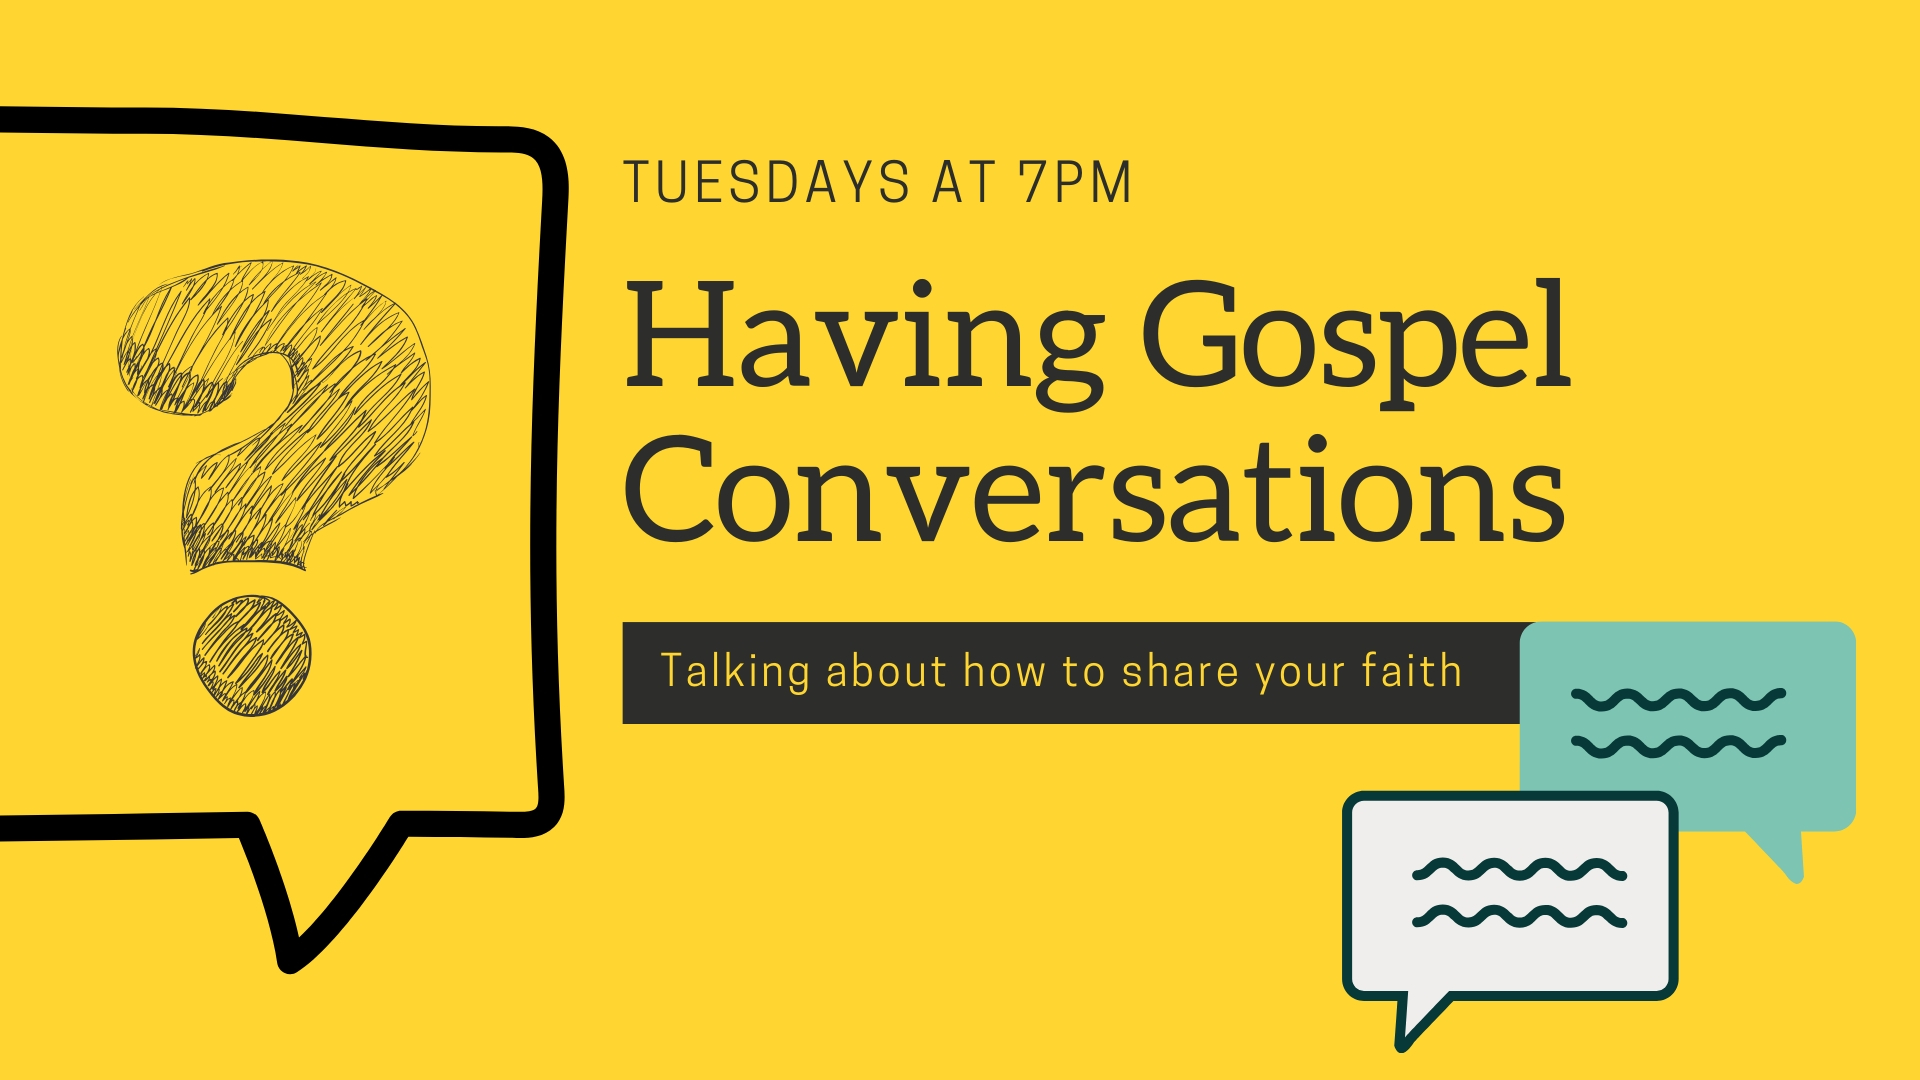 Having Gospel Conversations - Week 6 Image